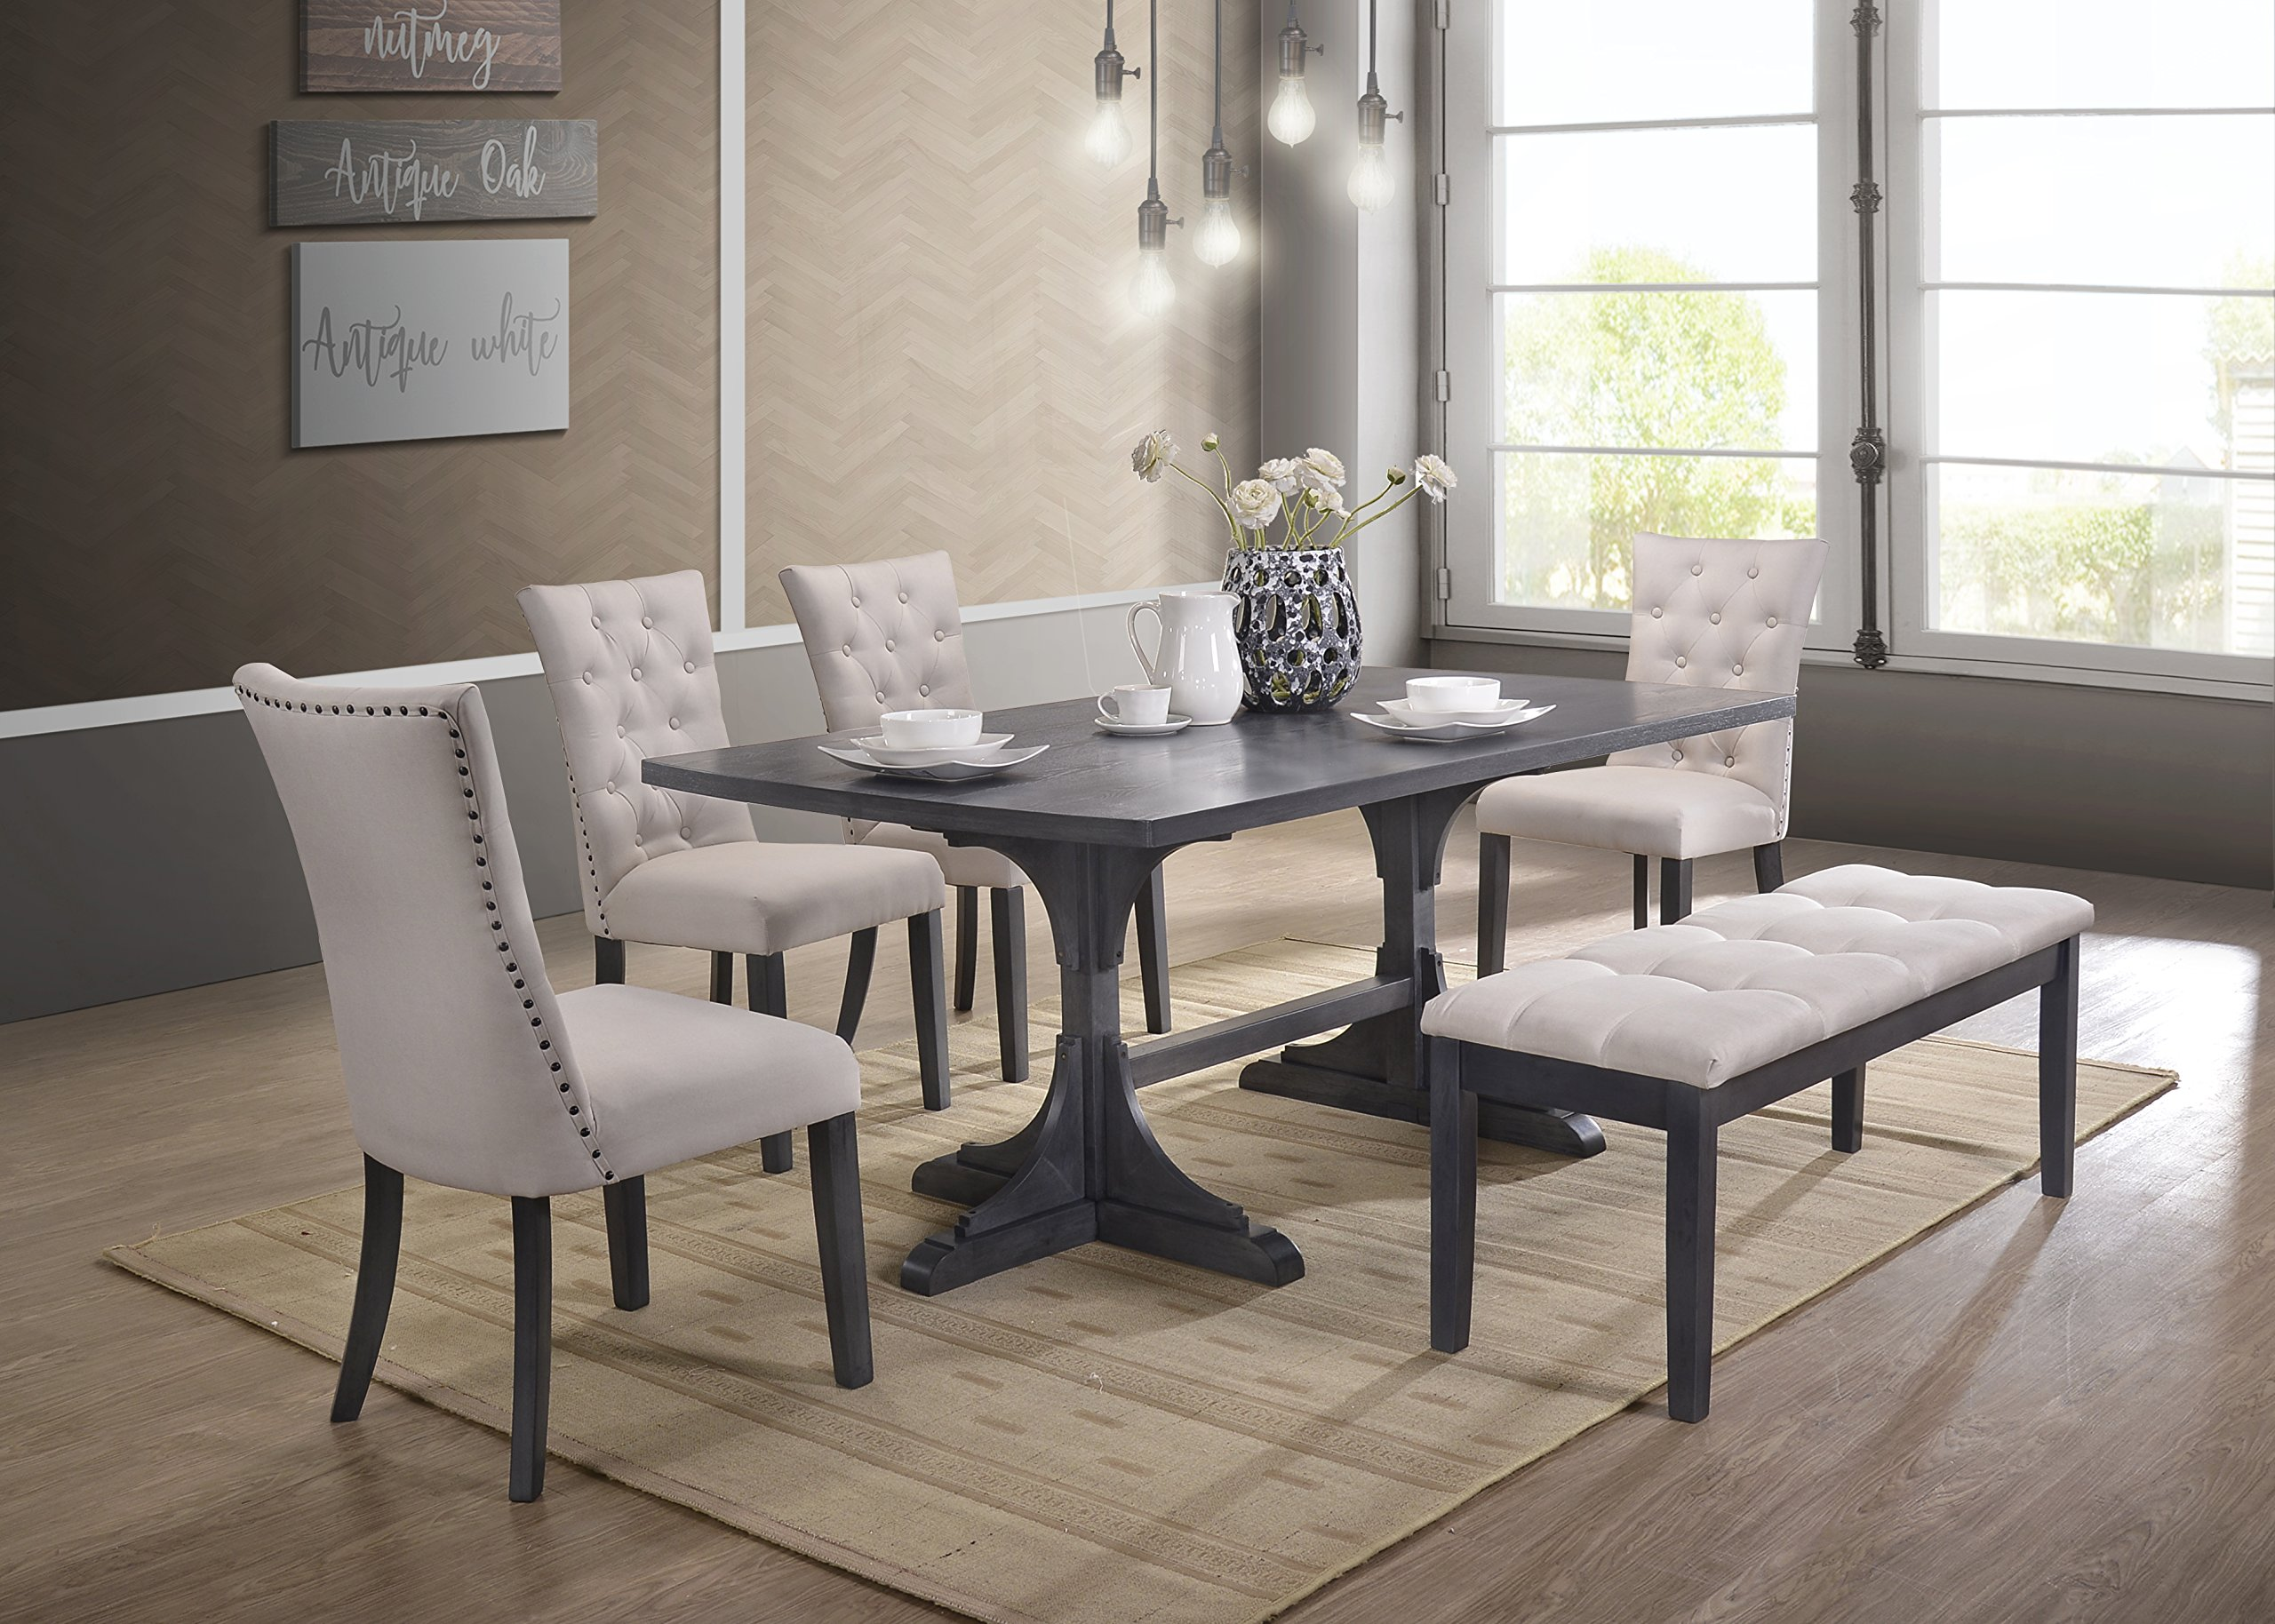 Best Quality Furniture Light Gray Linen Look Upholstered 6 Piece Dining Set with Bench by Best Quality